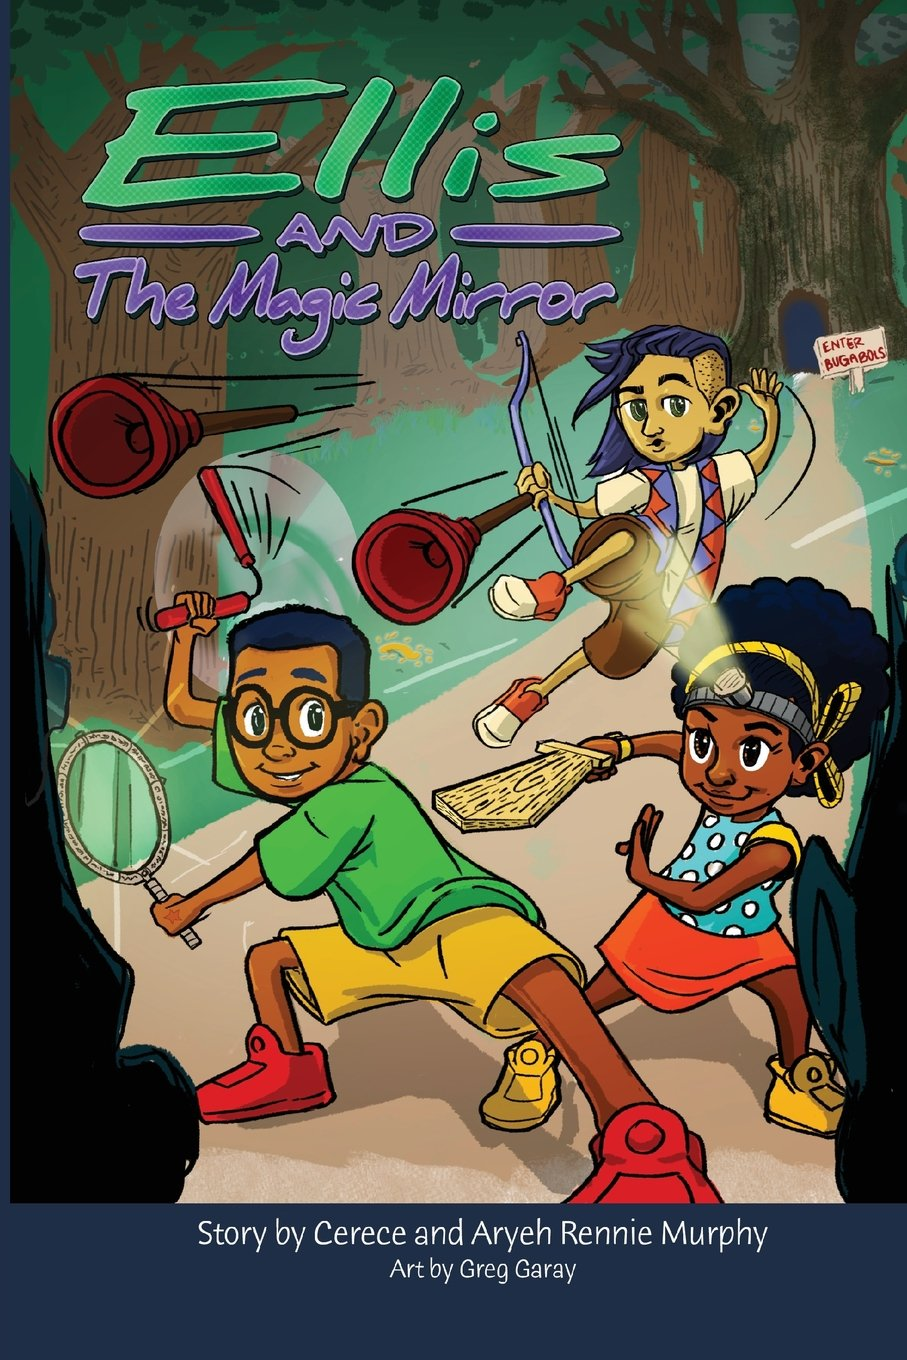 Ellis and the Magic Mirror – Cerece Rennie Murphy